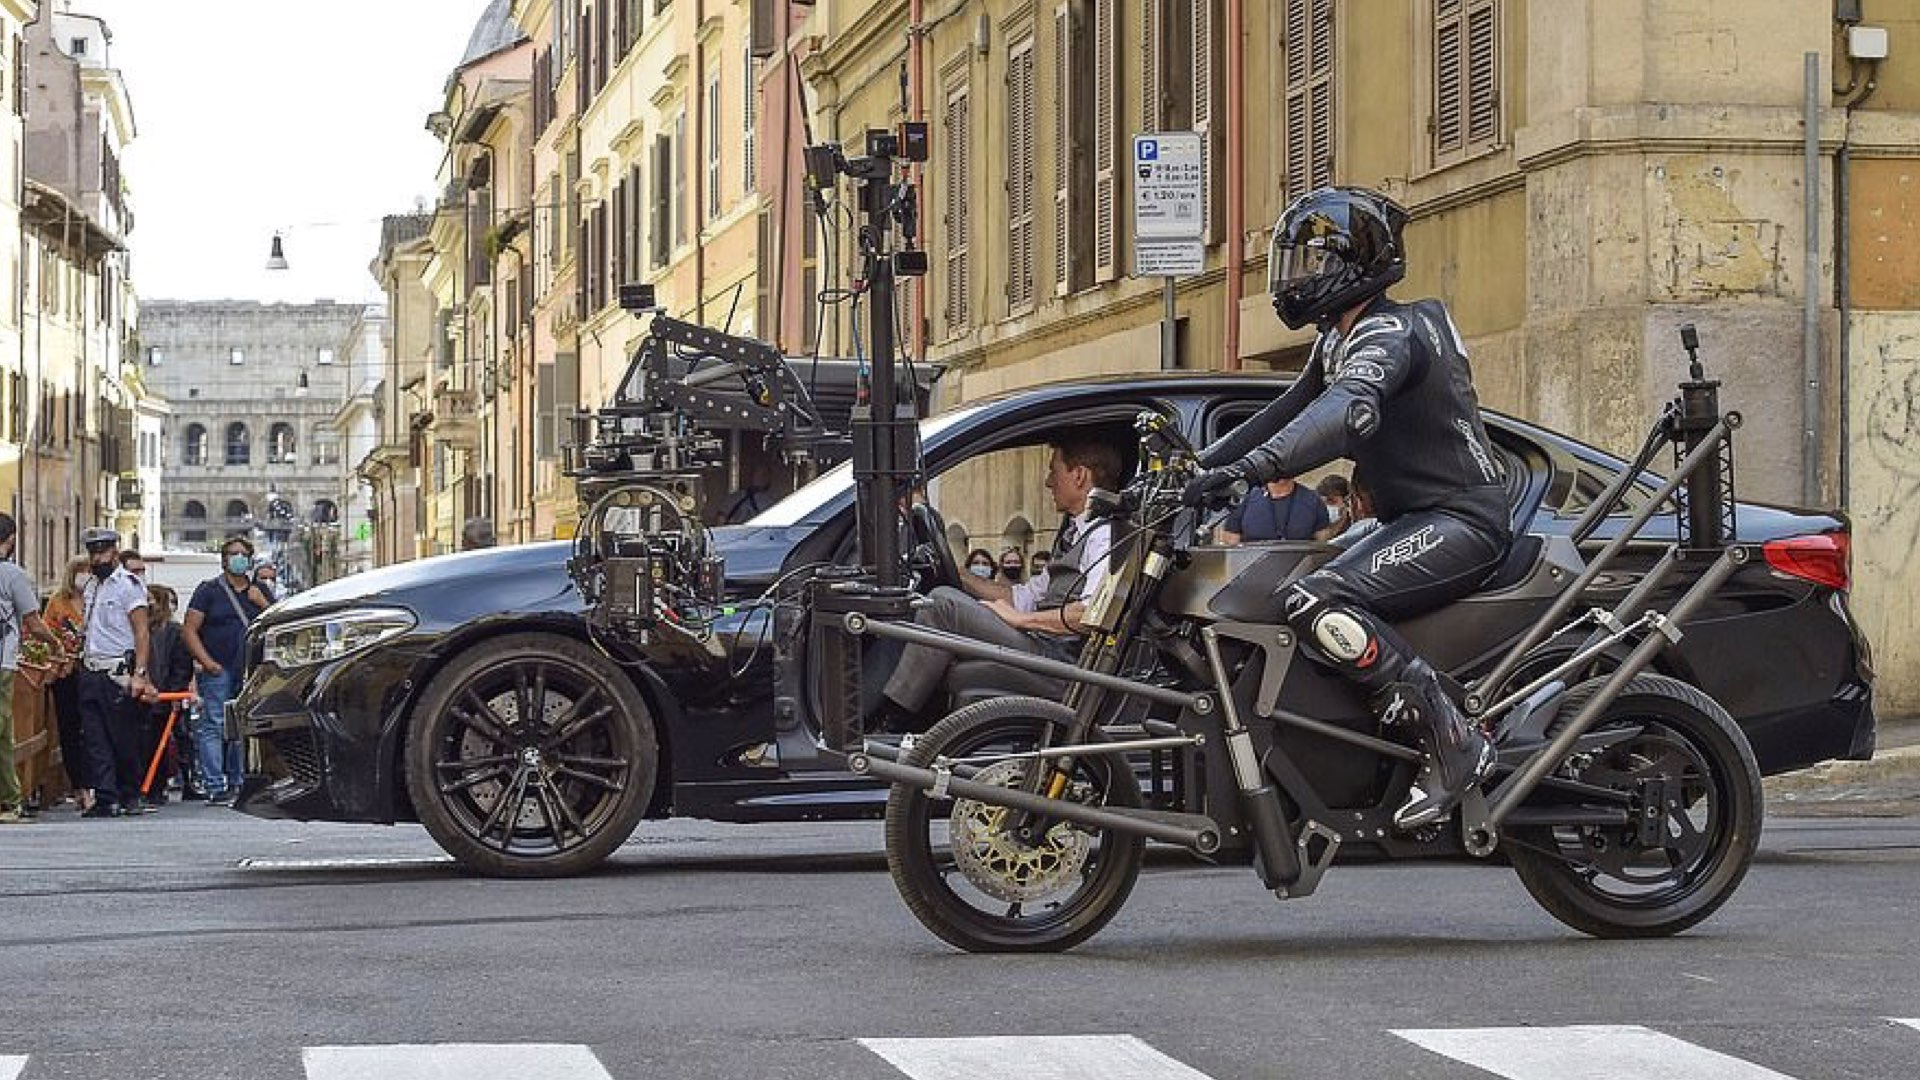 Mission: Impossible shooting